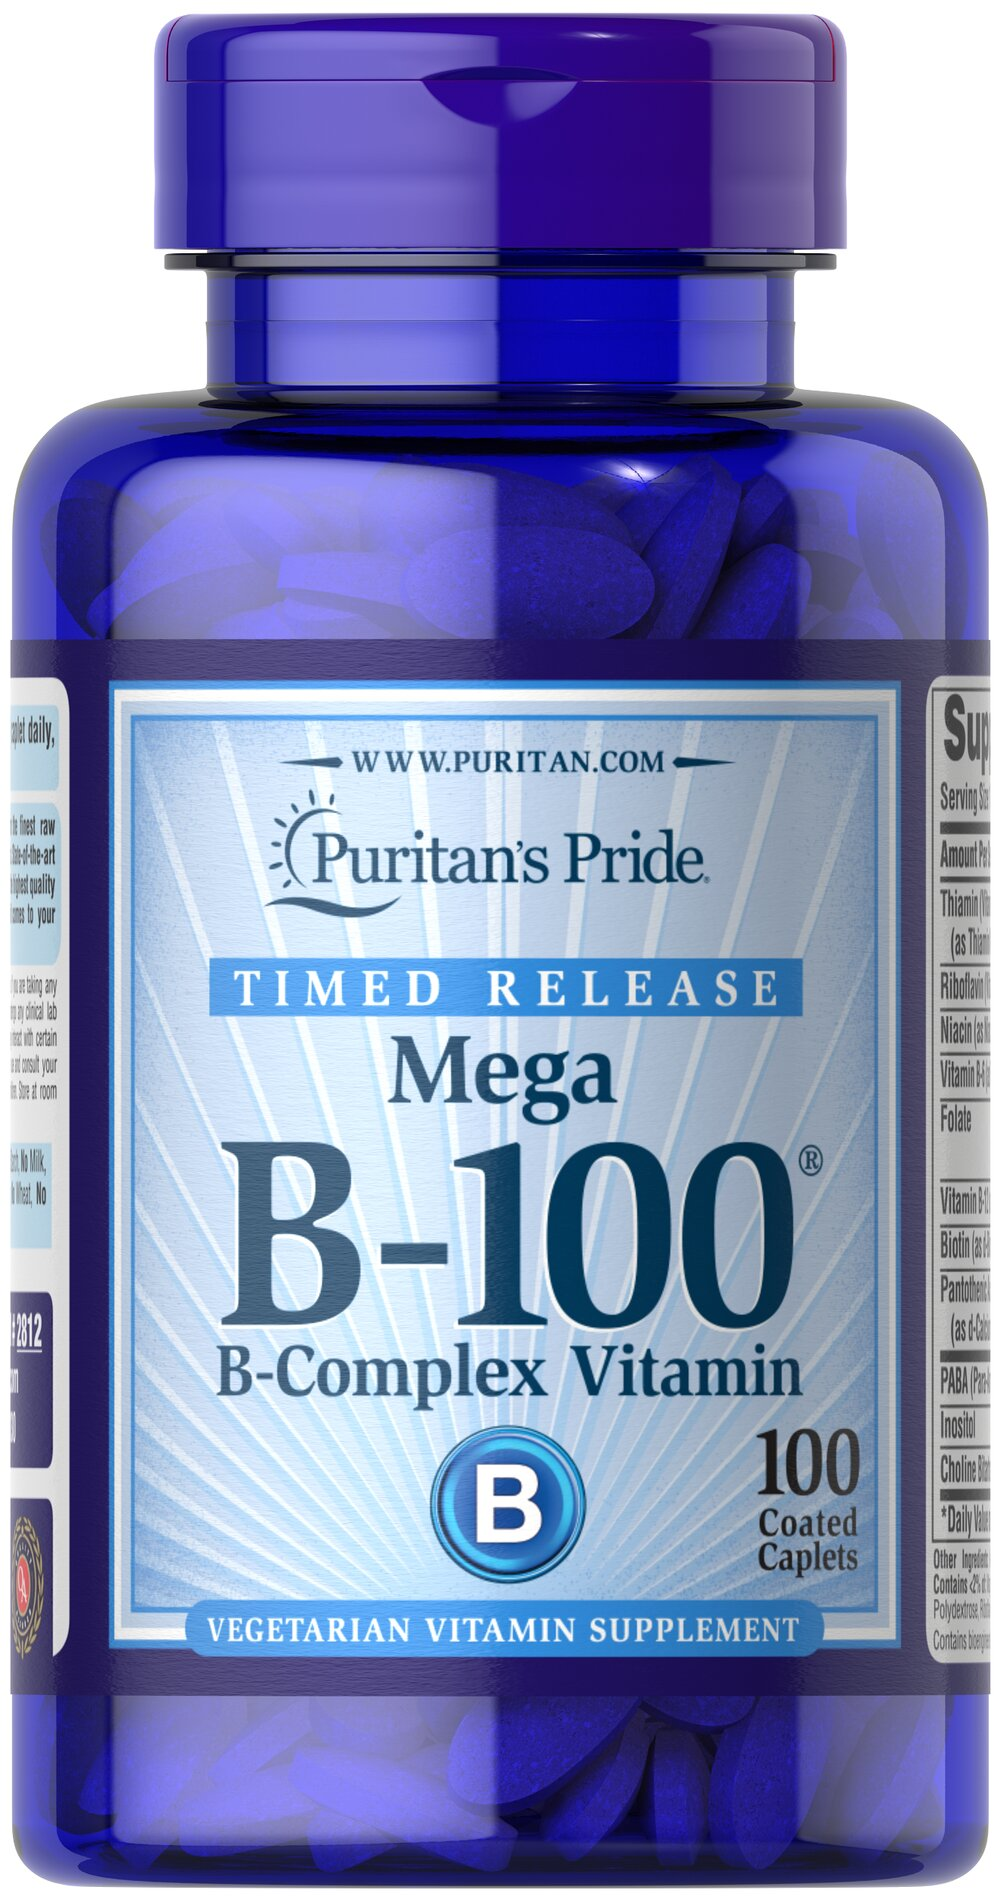 Vitamin B-100® Complex Timed Release <p>Each nutrient in the Vitamin B-100® Complex performs a unique role in maintaining proper metabolic functioning and is essential for well being.** When taken together in a complex formula, the B Vitamins help to maintain the health of the nervous system, skin, eyes and hair.** This product is specially formulated to provide a gradual release of vitamins over a prolonged period of time.</p>  100 Caplets 100 mg $27.19